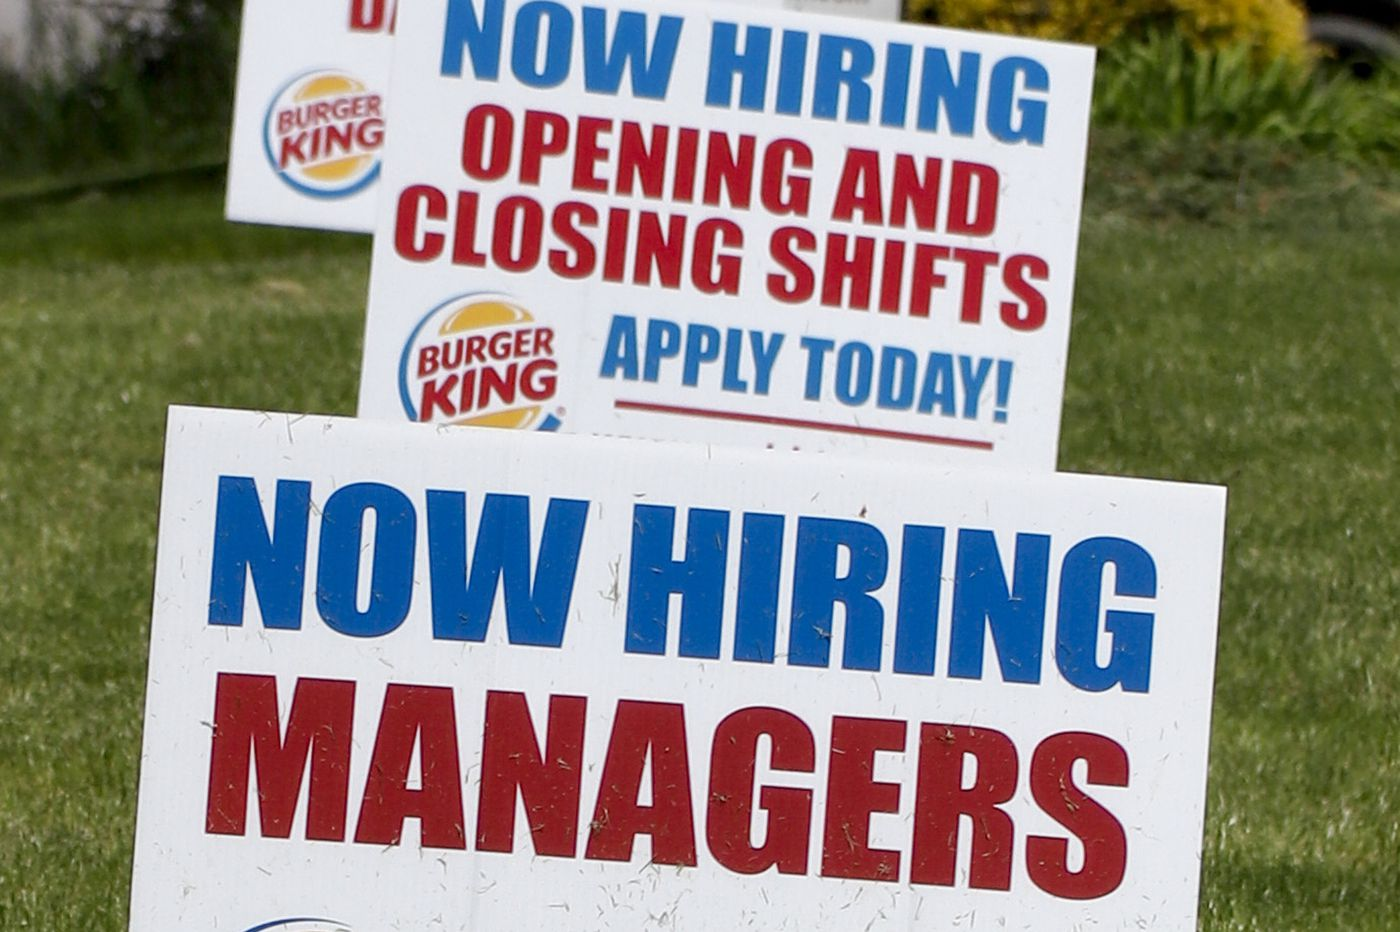 Pennsylvania jobless rate hits 15.1% as payrolls collapse